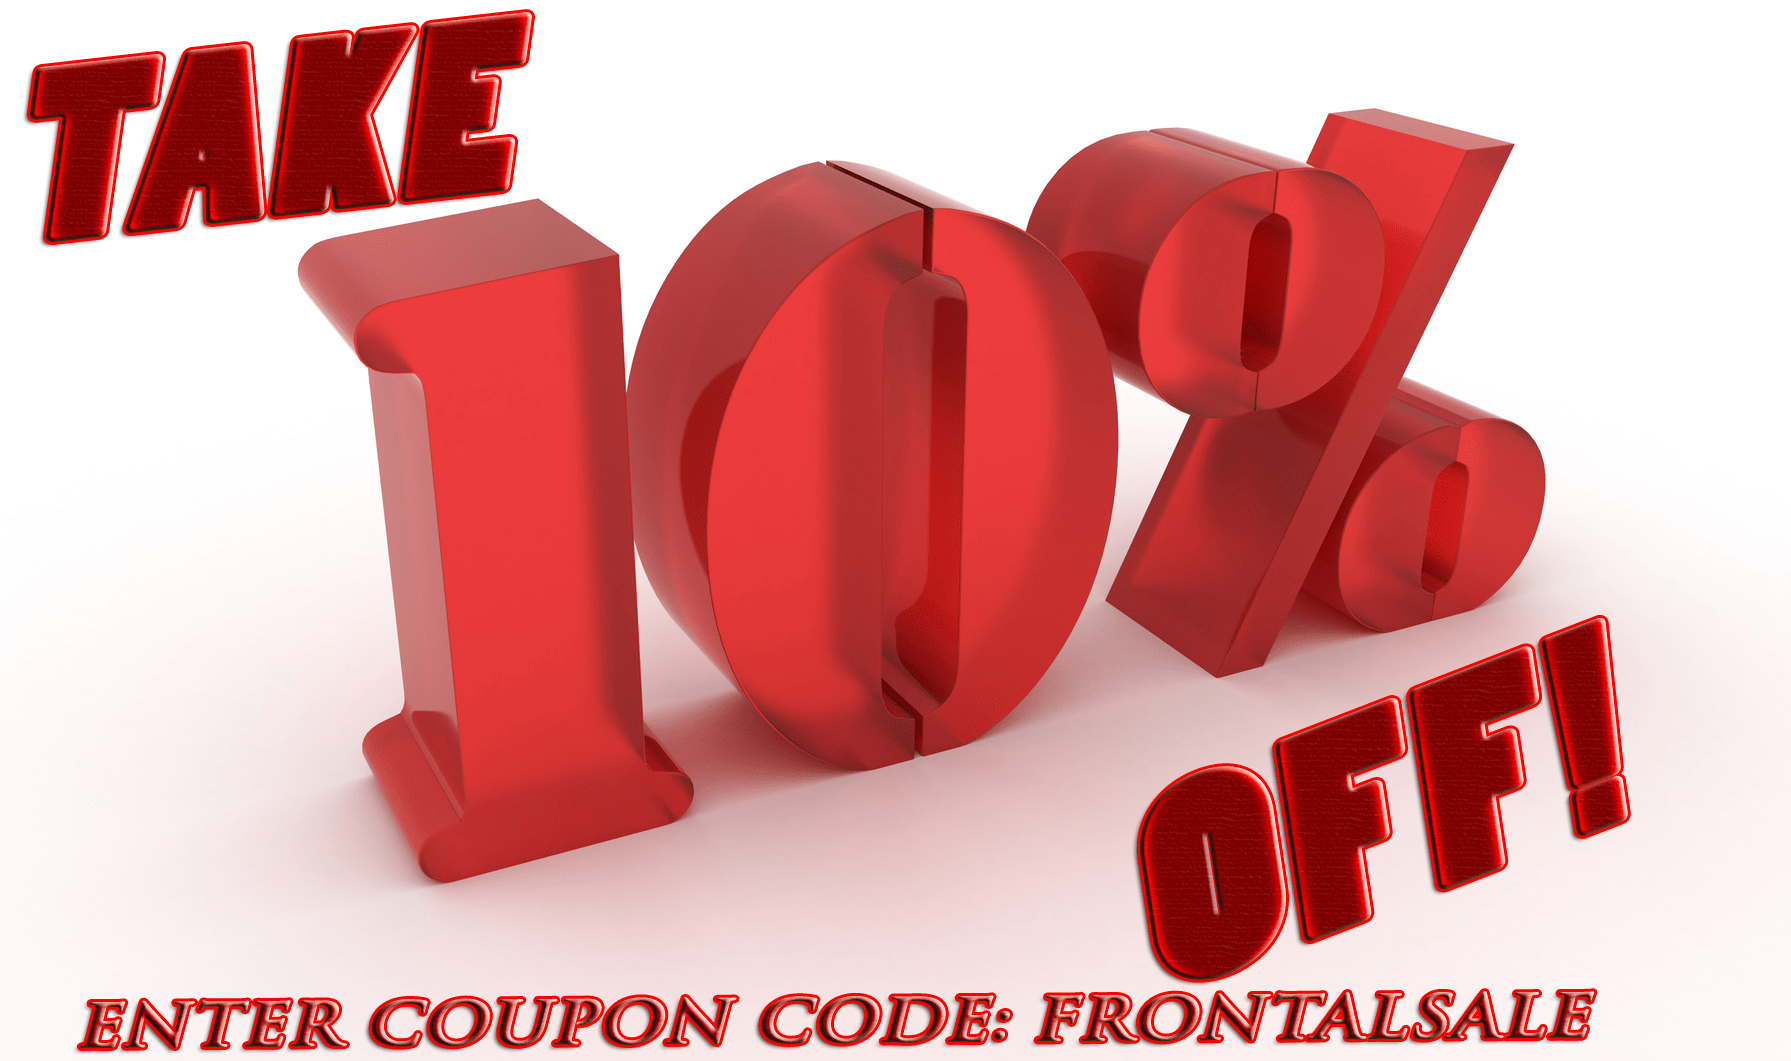 Frontal Sale at thelacewigsstore.com